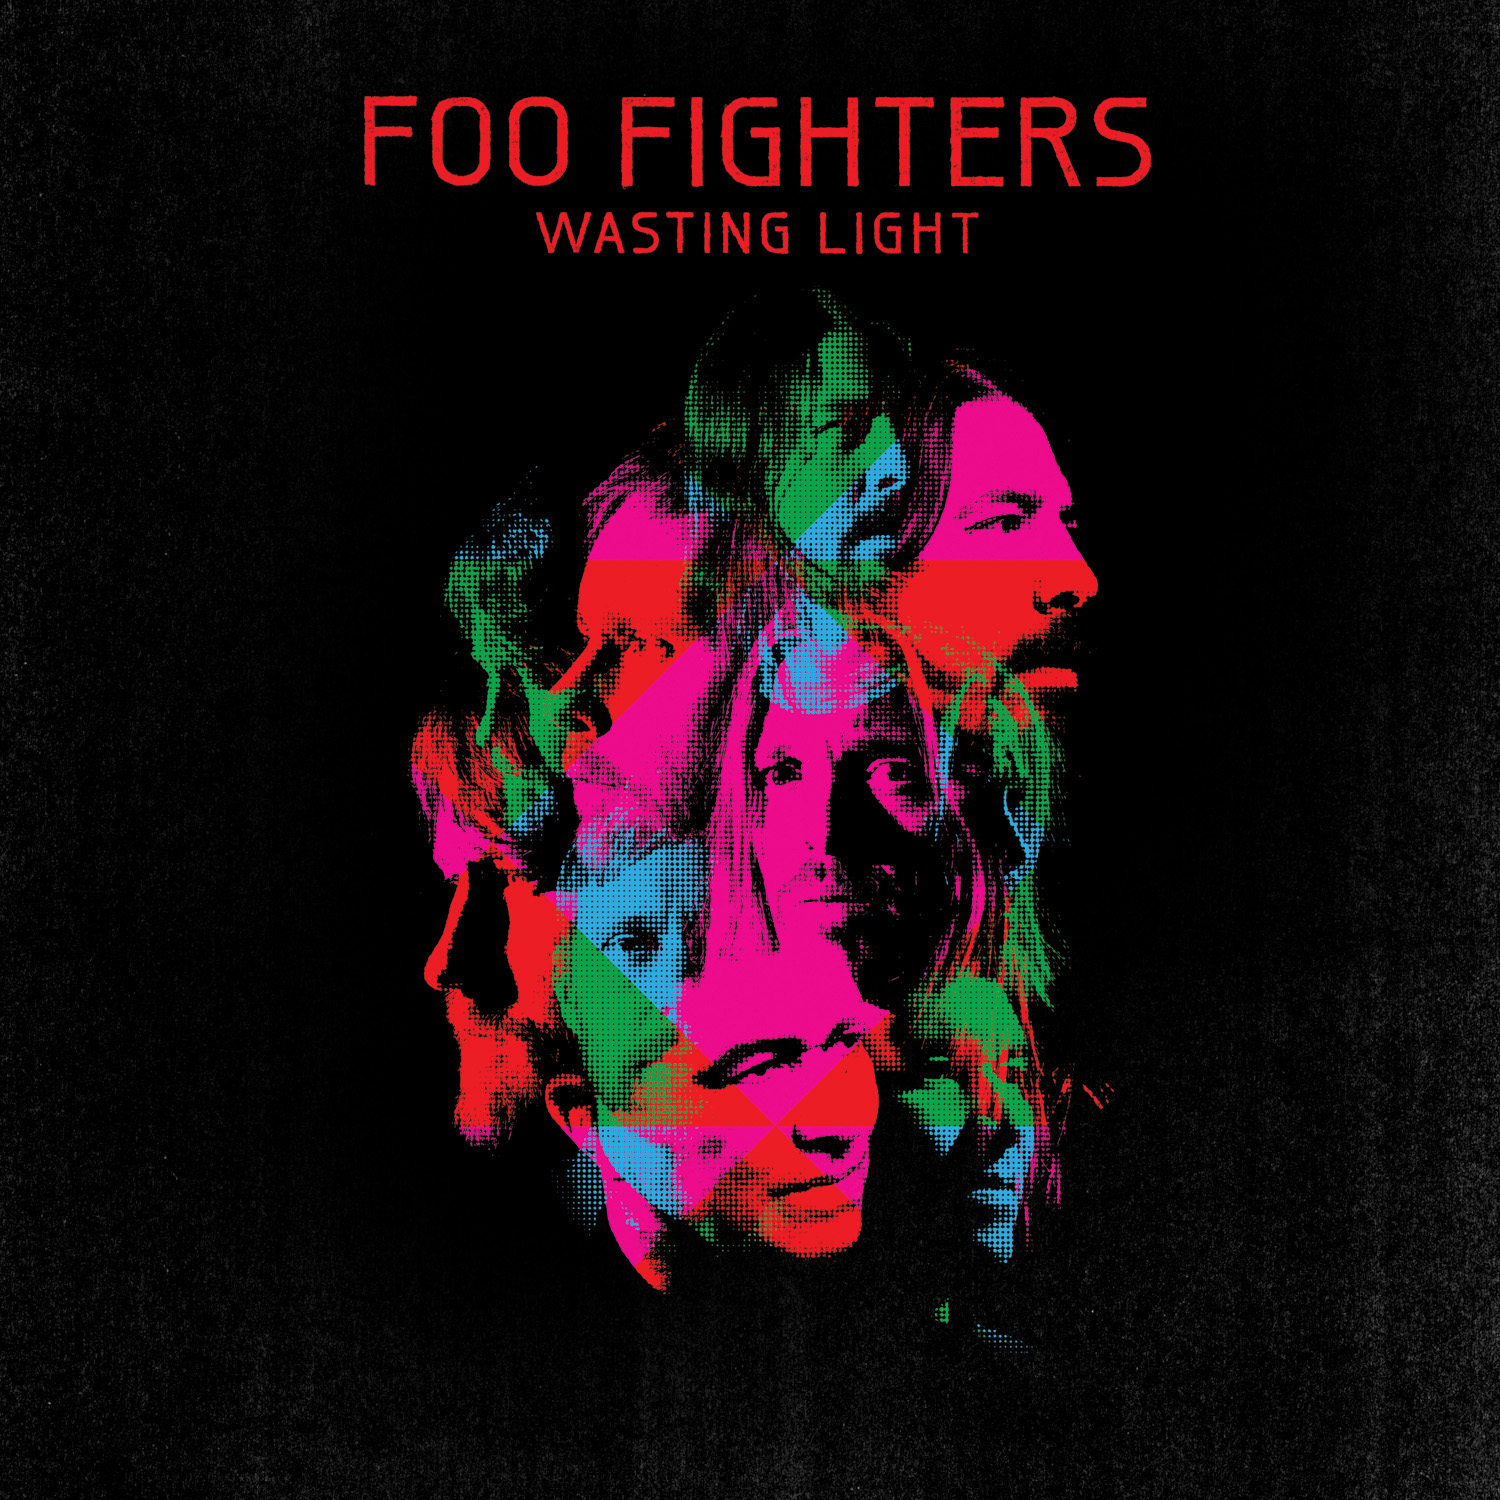 Wasting Light Cover.jpg